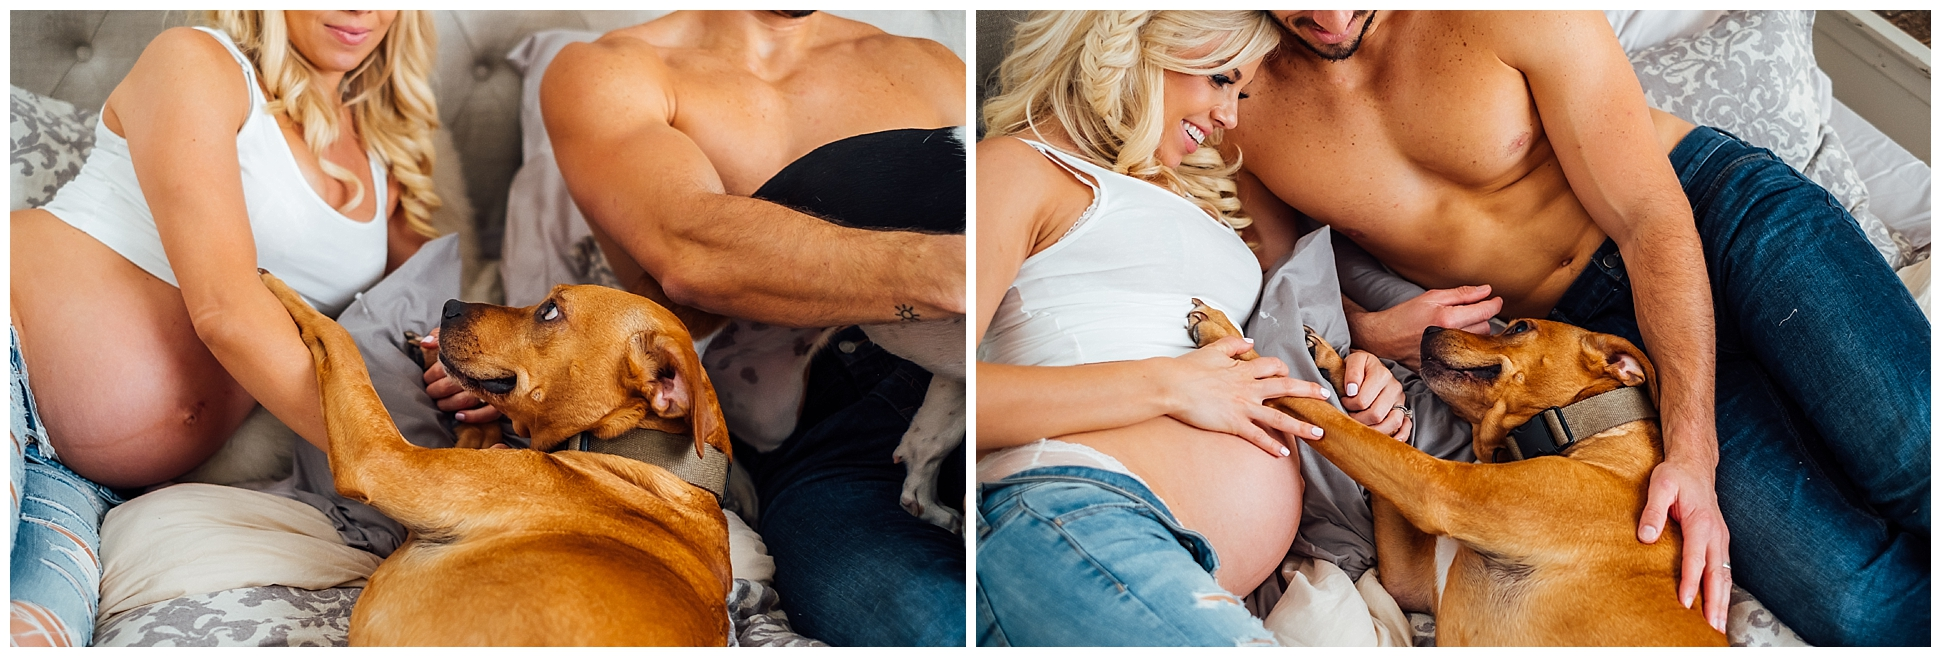 tampa-playful-at home-maternity-boudoir-dogs_0053.jpg